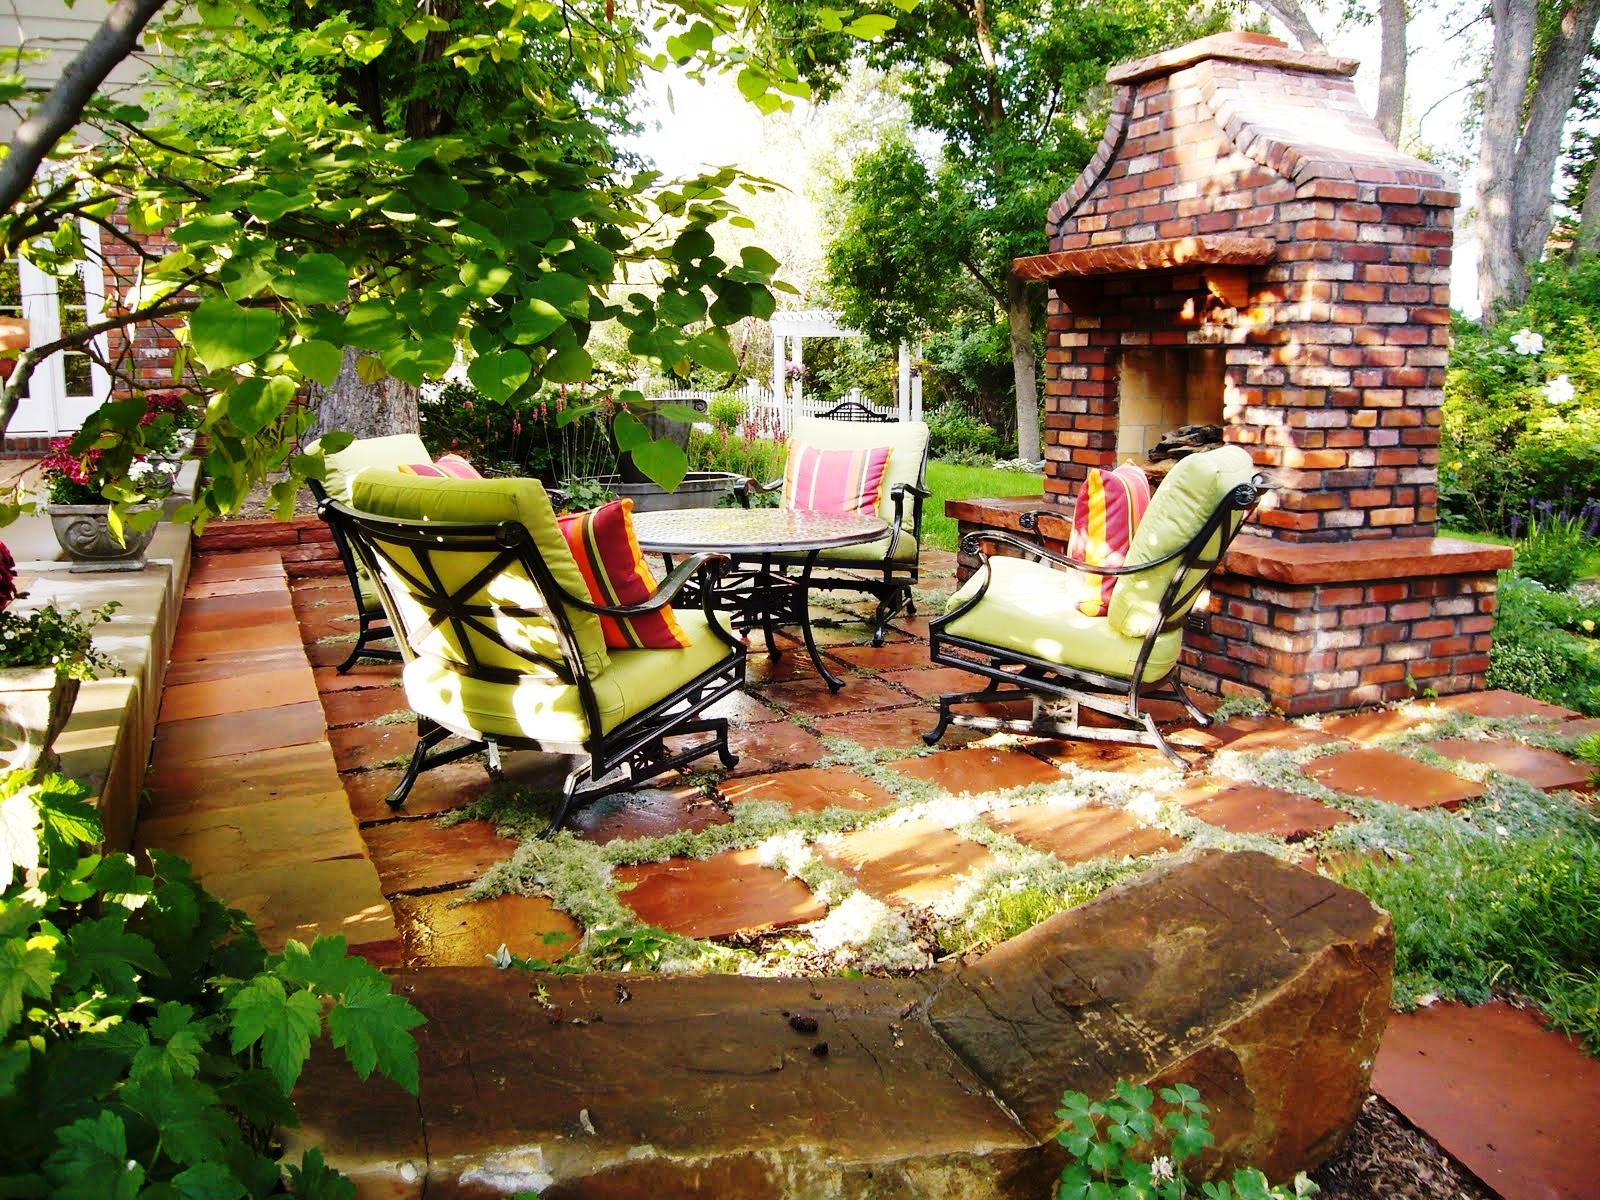 What You Need To Think Before Deciding The Backyard Patio ... on Affordable Backyard Ideas id=83409